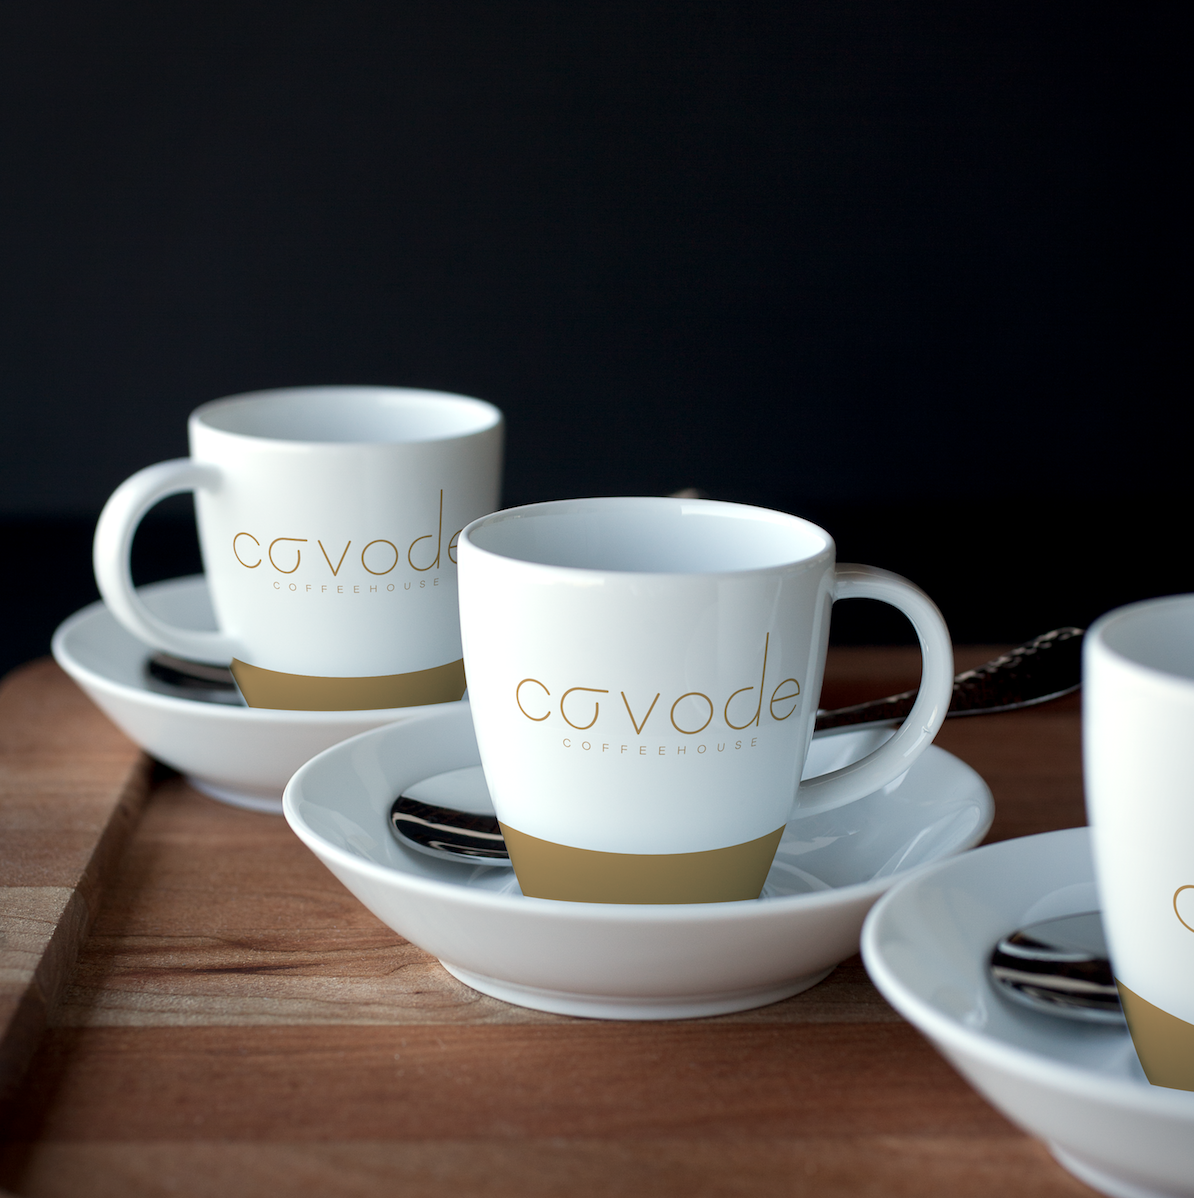 Cavode Coffeehouse   Conceptual brand, packaging, print